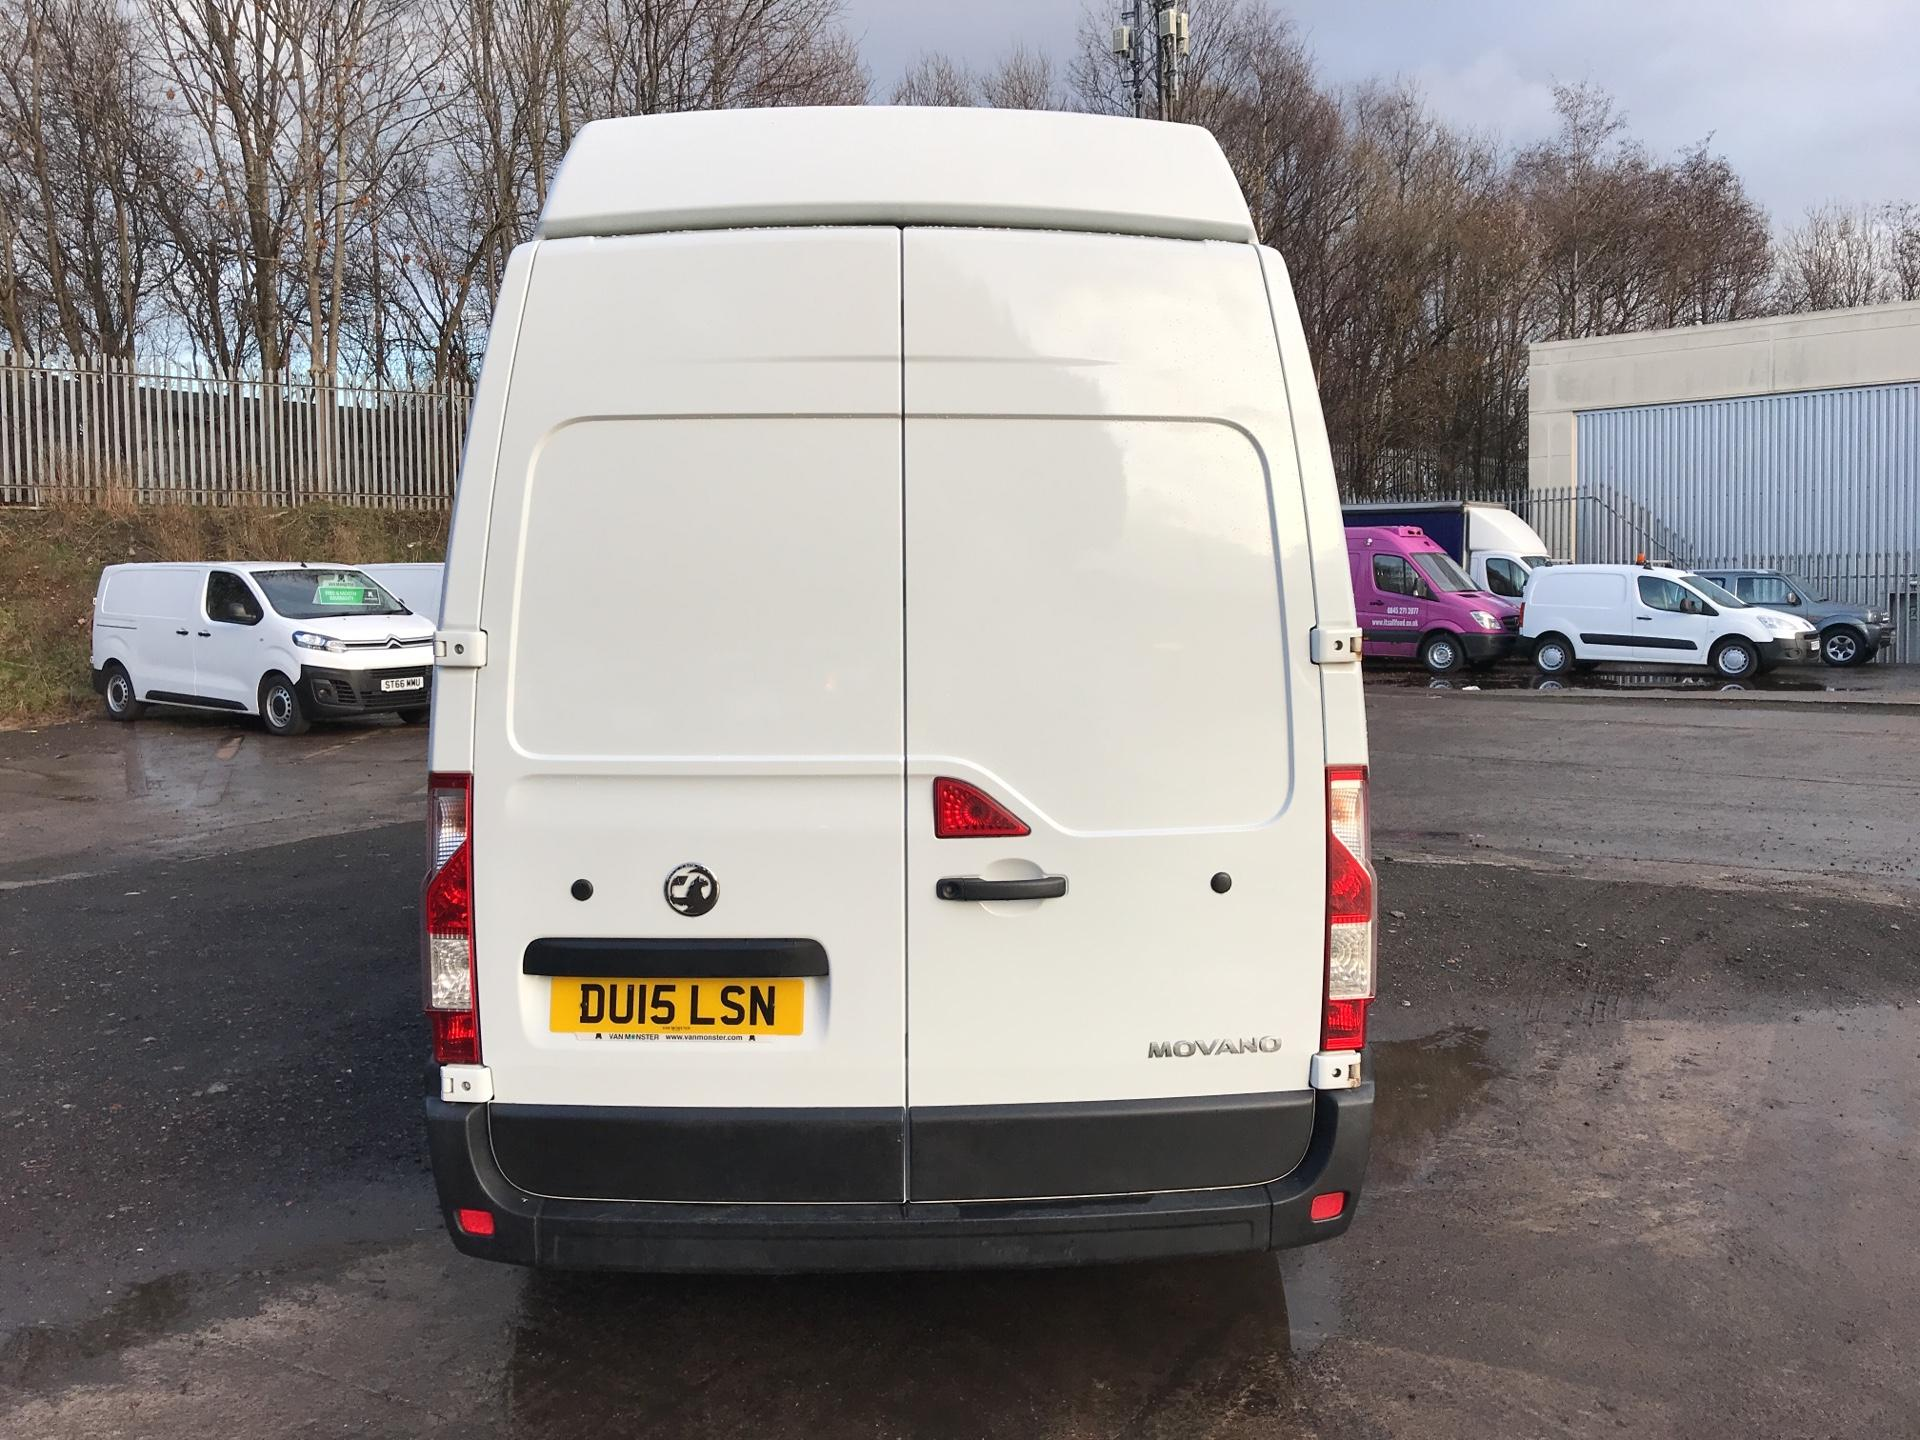 2015 Vauxhall Movano 35 L2 H3 2.3 TDCI 125PS EURO 5 (DU15LSN) Image 4